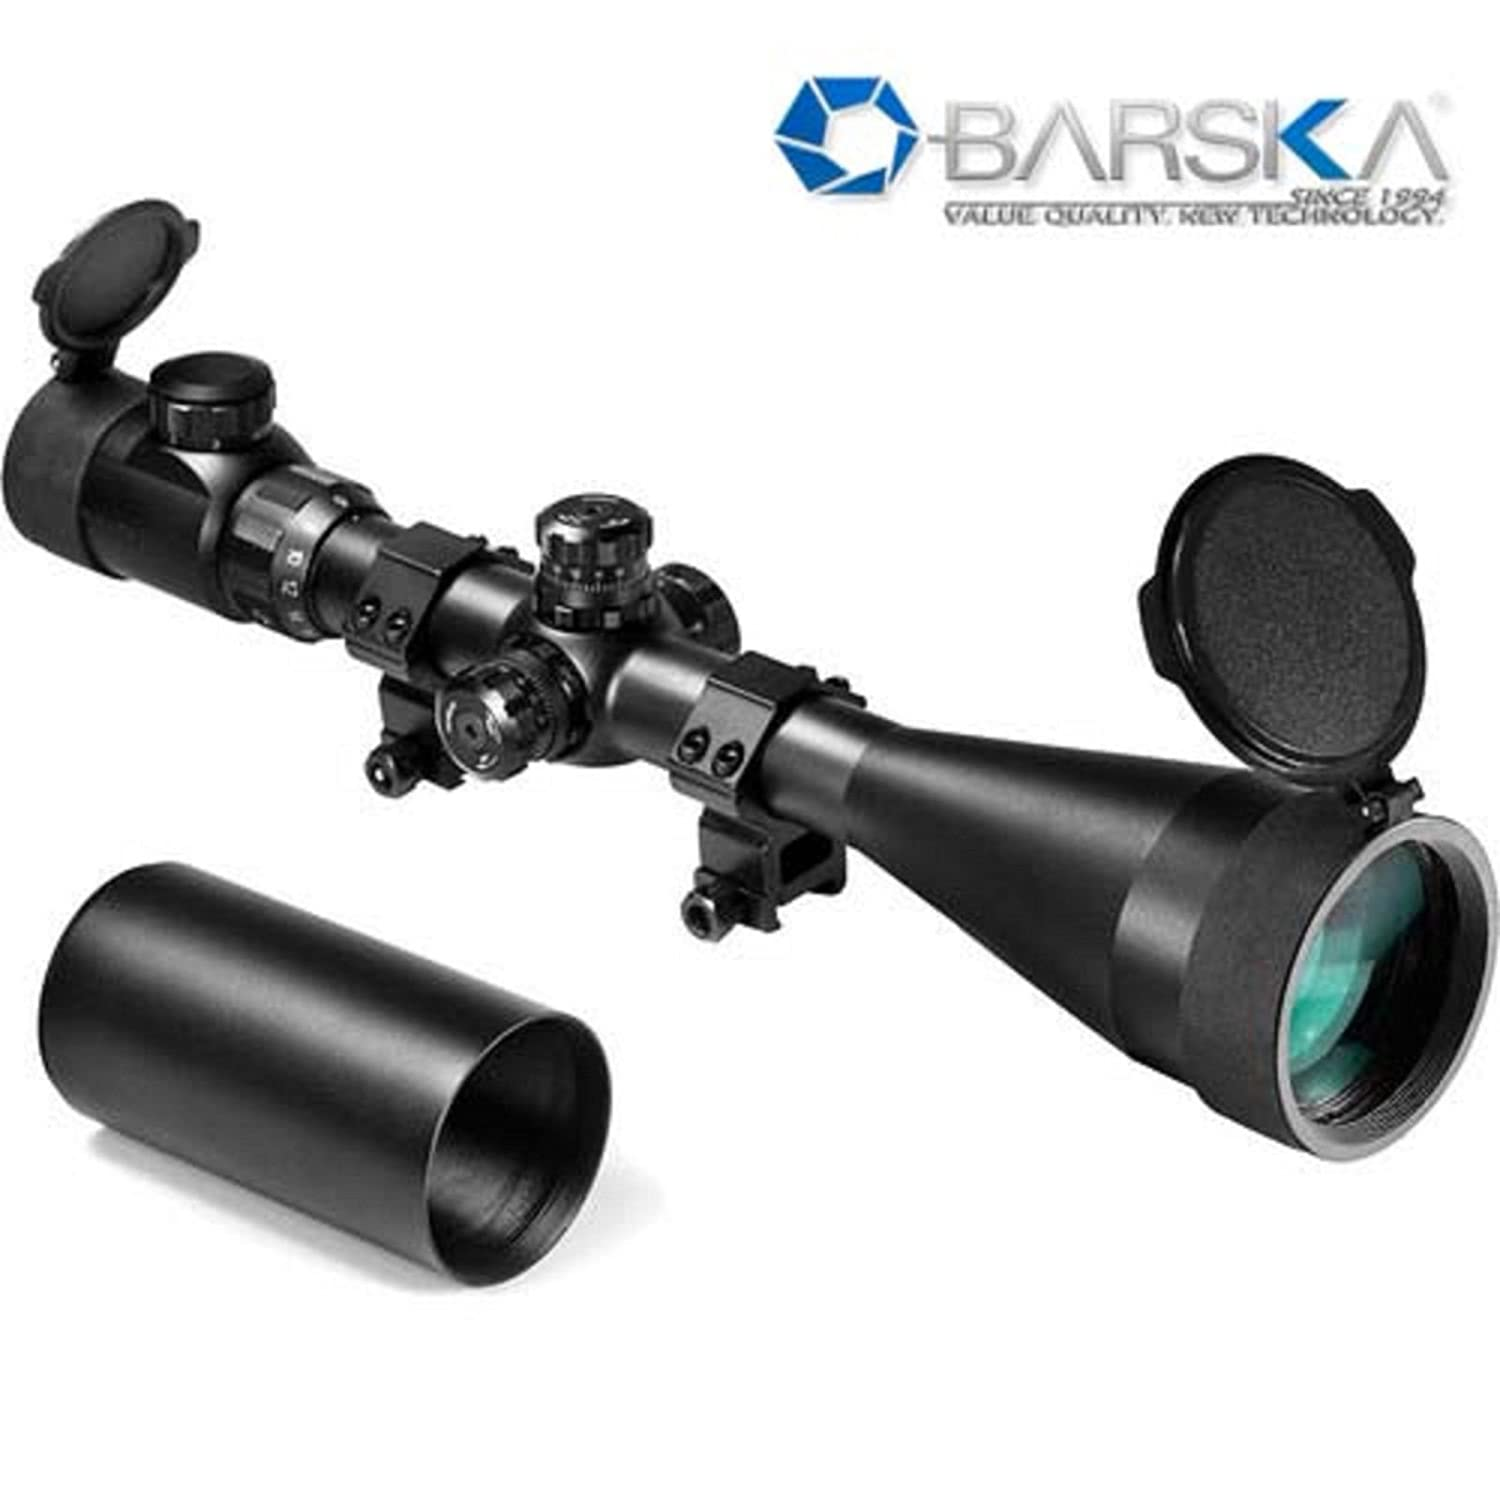 Barska 6 - 24 x 60mm Swat Series Riflescope, Matte Black Finish with Mill-Dot IR Illuminated Reticle, 30mm Tube -...